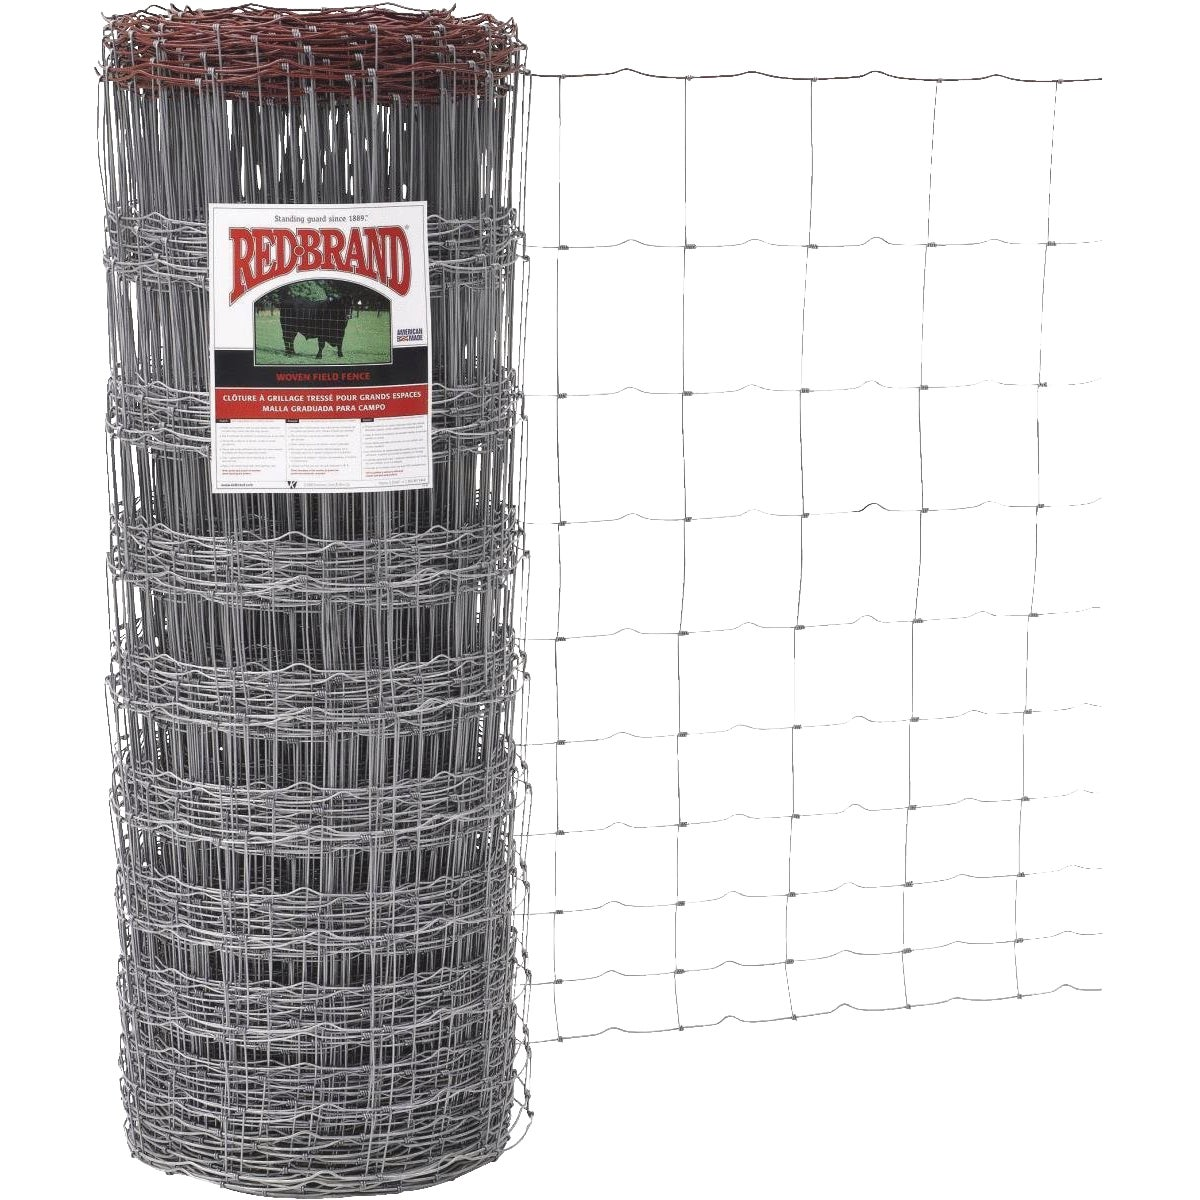 939-6-14-1/2 FIELD FENCE - 70091 by Keystone Stl & Wire